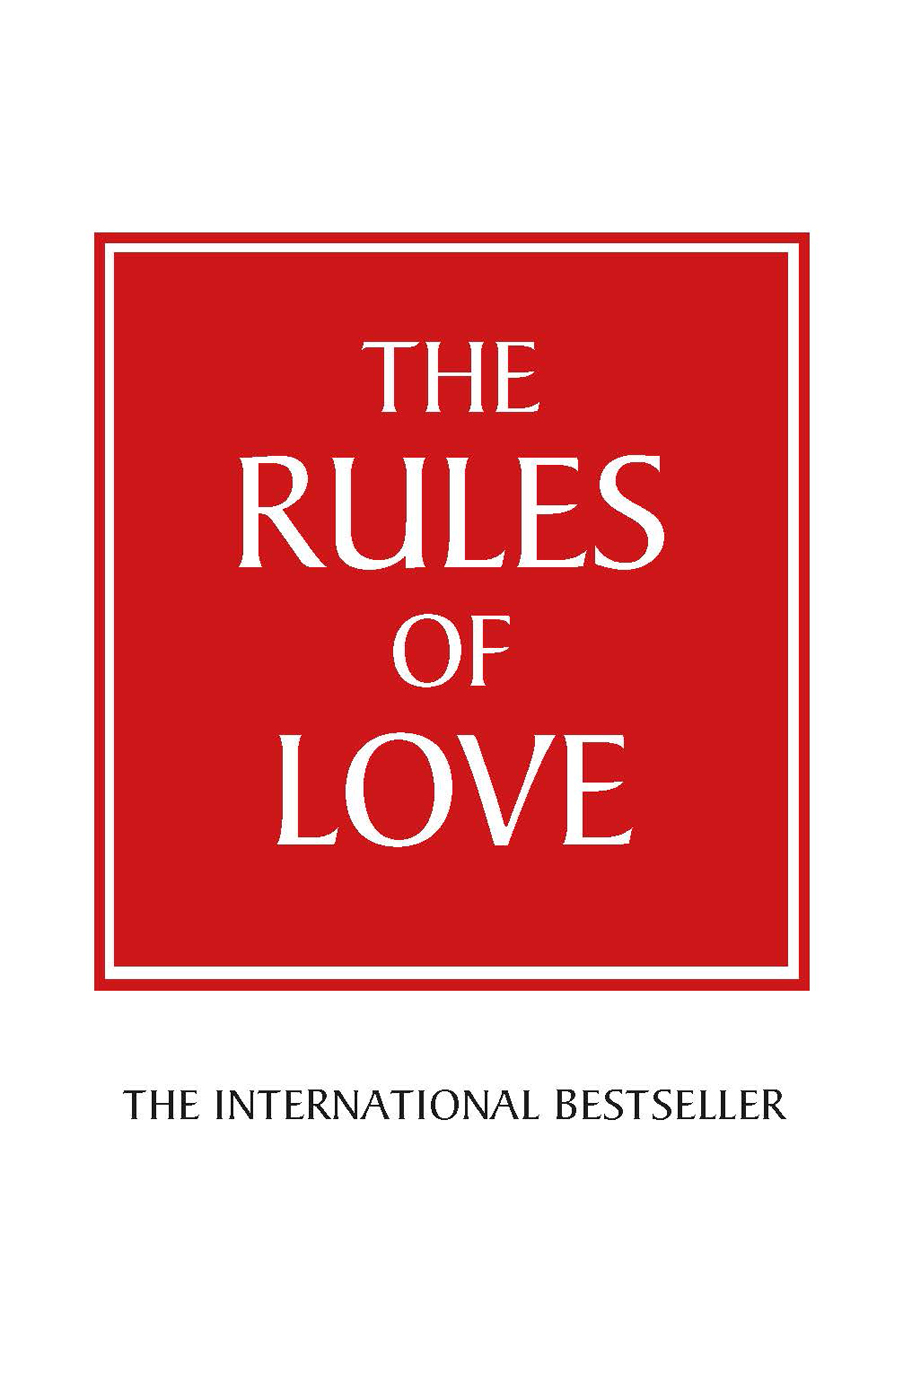 The Rules of Love A personal code for happier,  more fulfilling relationships